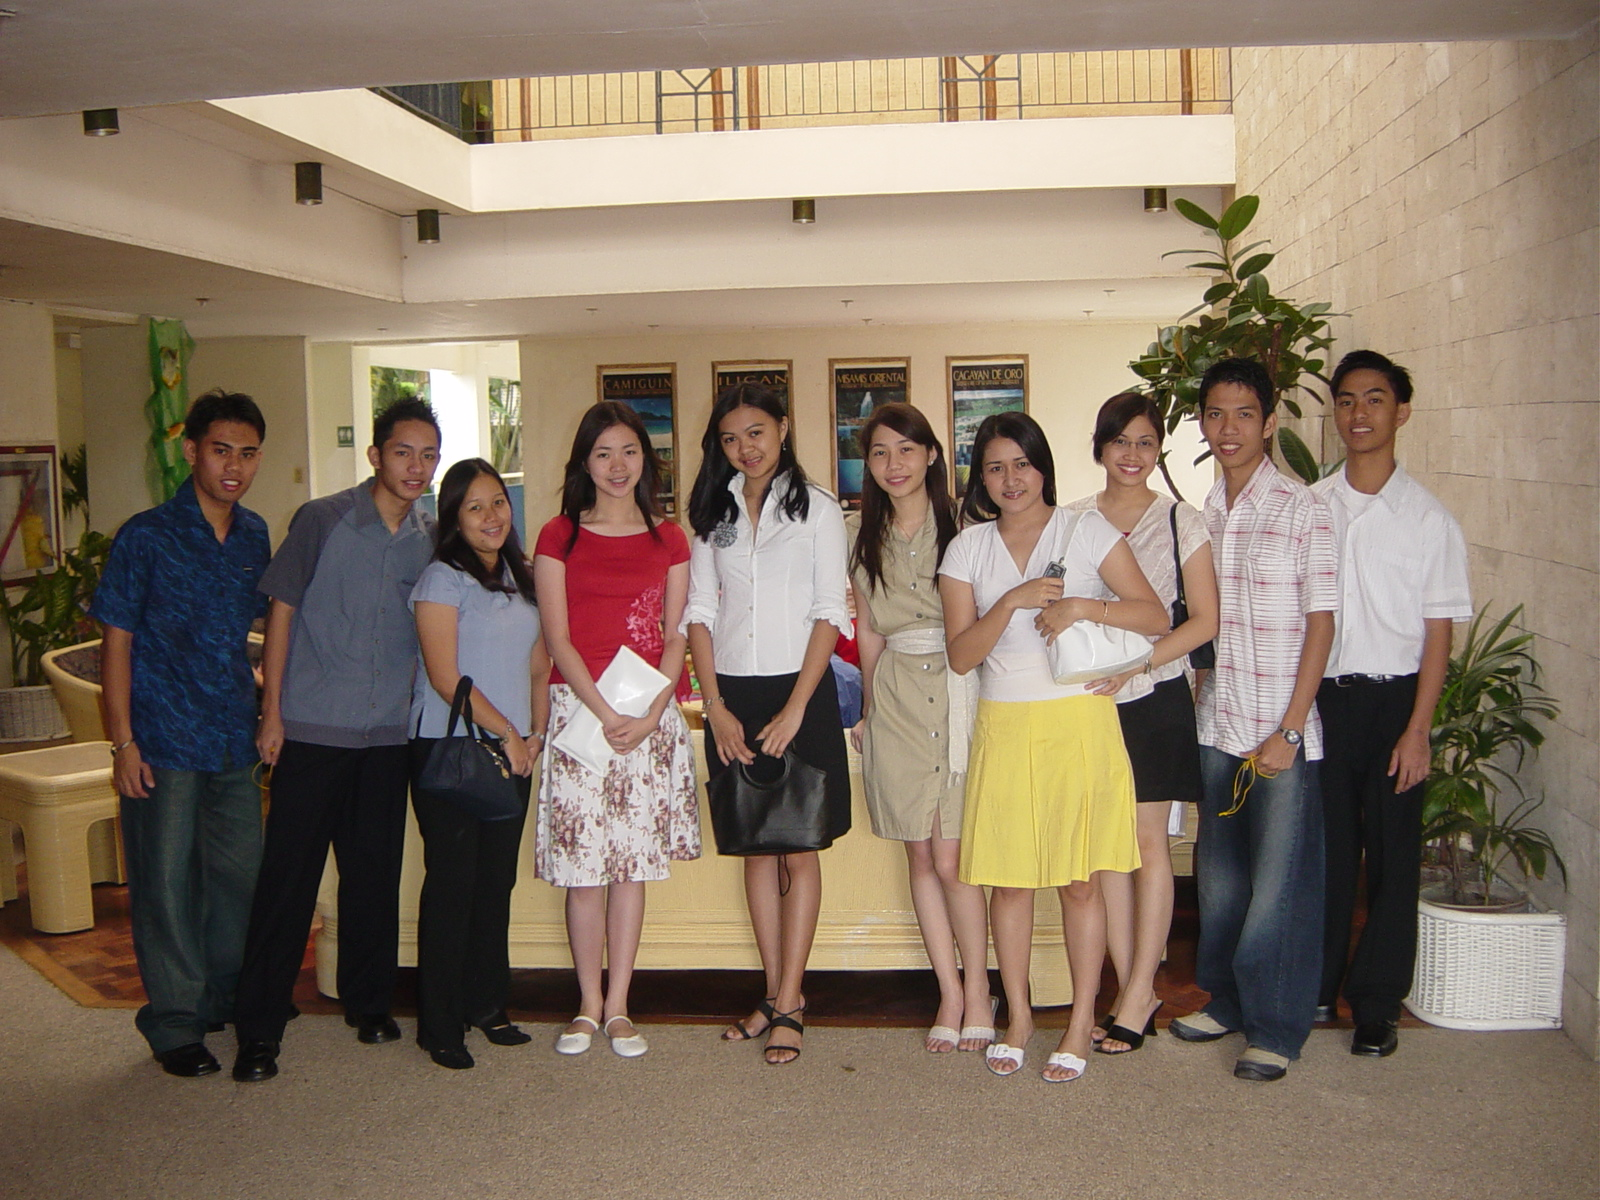 Cathy with other delegates from Ateneo de Davao University at the 2005 1st MBMYC (Mindanao Business Youth Congress) hosted by Xavier University at Cagayan de Oro City | 2005